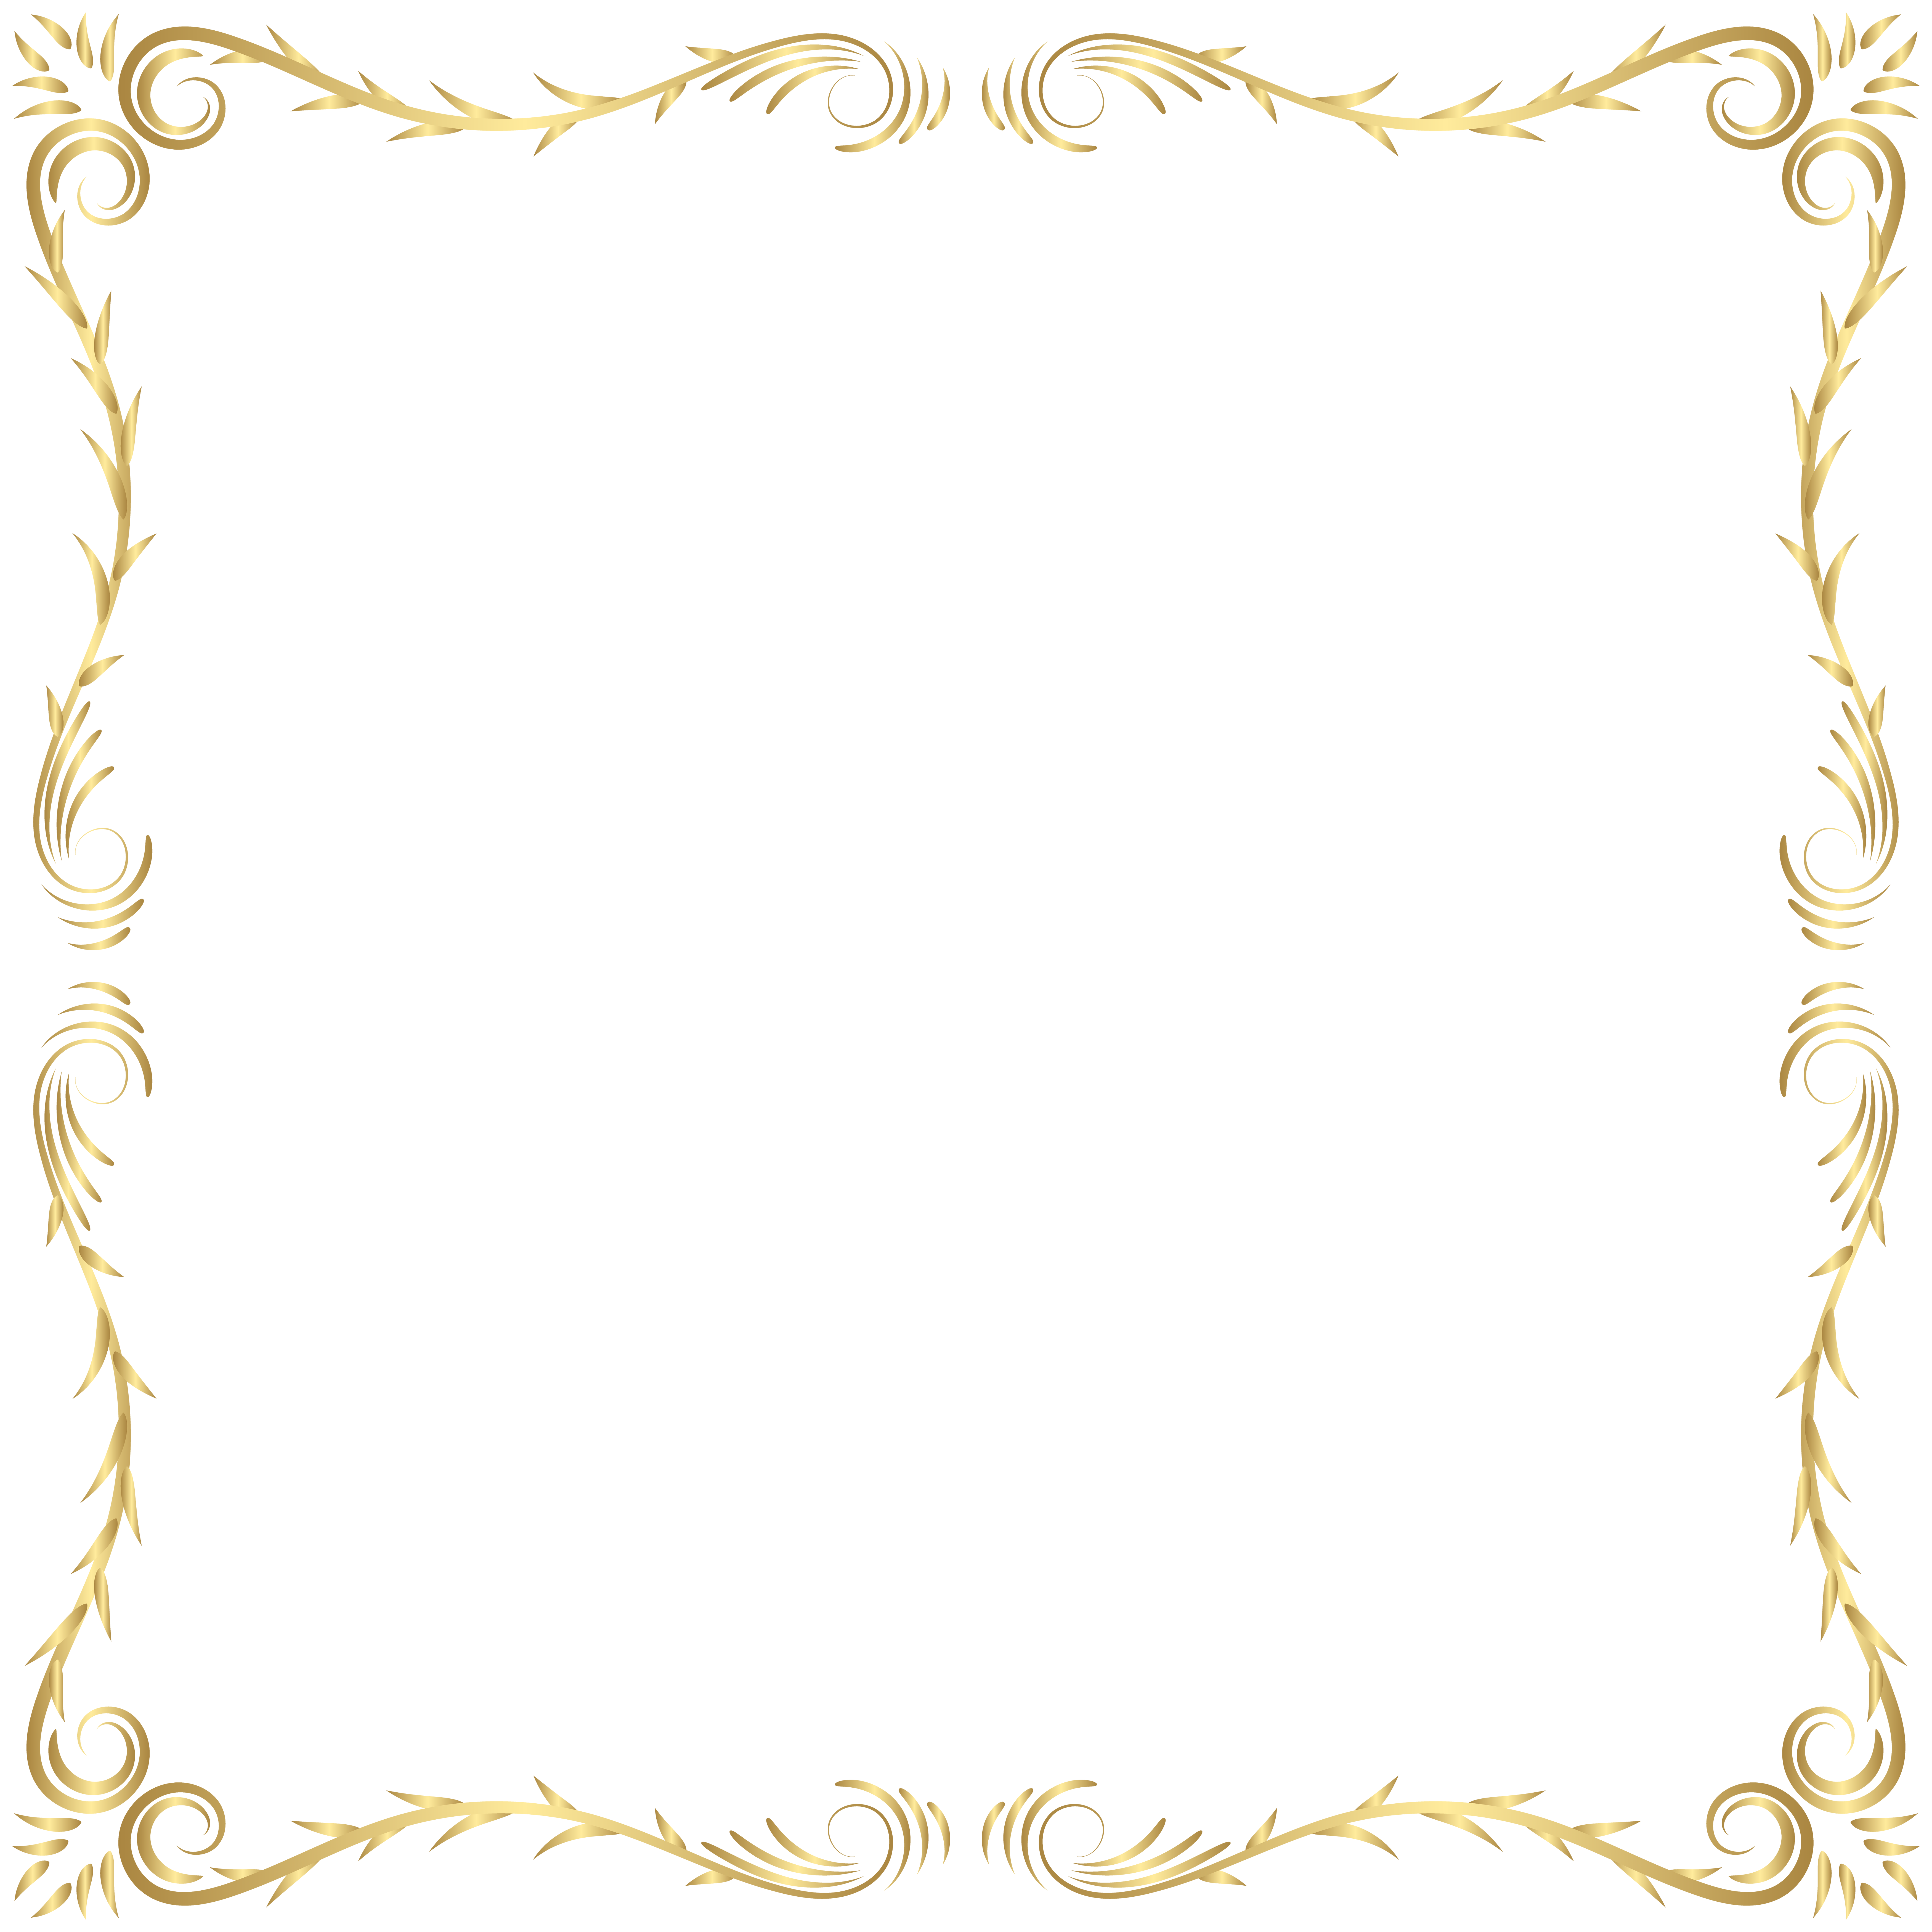 Frame Border Transparent Png Clip Art Gallery Yopriceville High Quality Images And Transparent Png Free Clipart Clip Art Clip Art Borders Free Clip Art